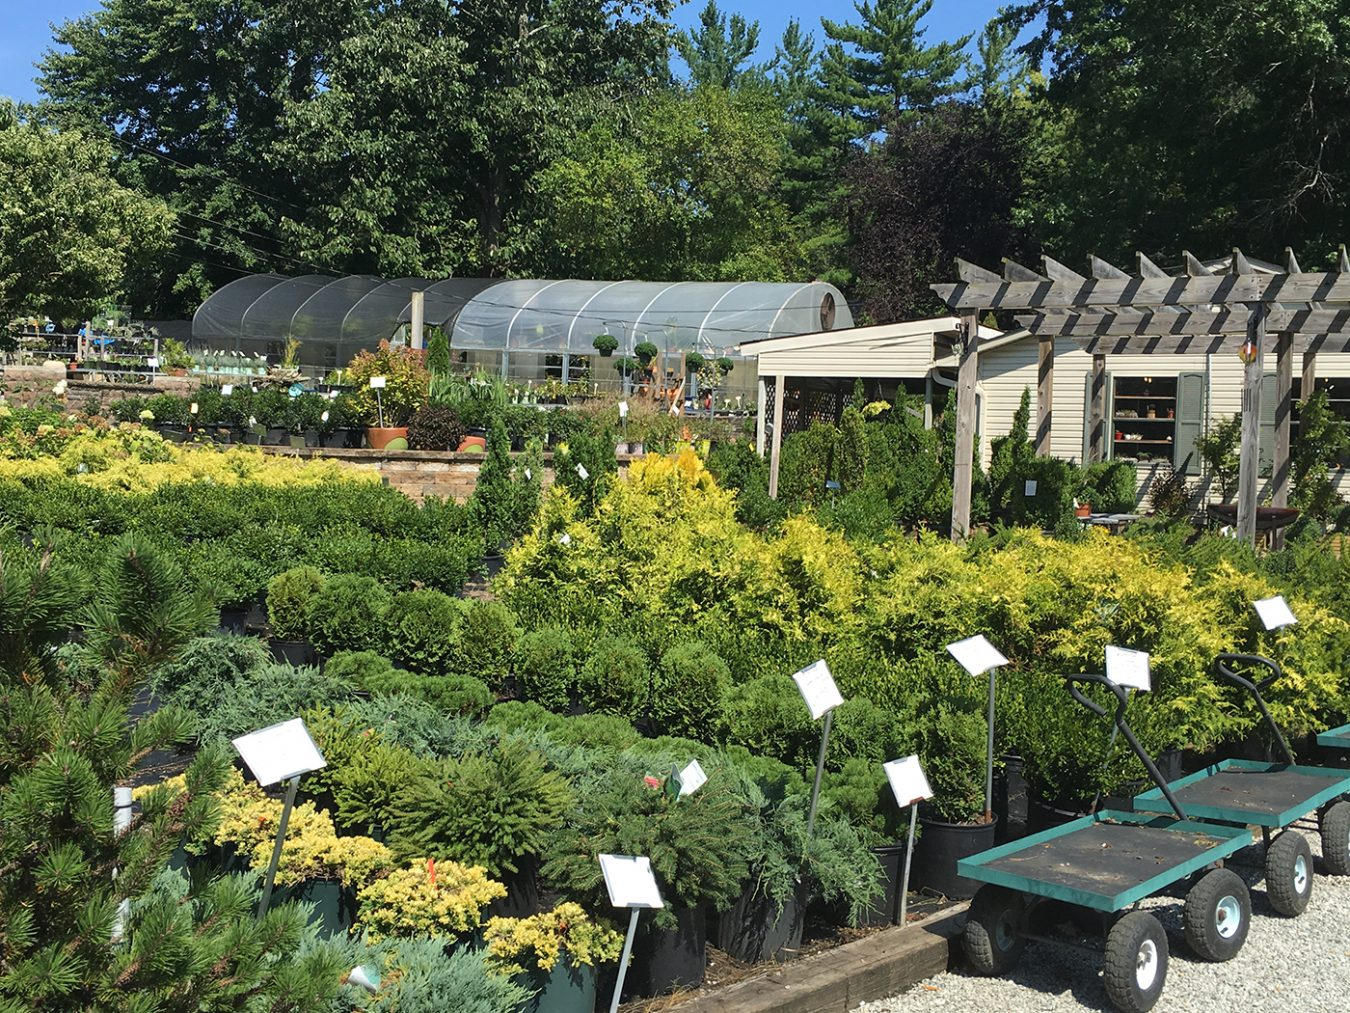 Bloomington Valley Nursery isn't just a resource for household green thumbs. They also supply local landscaping companies and stock plenty of trees, evergreens, and shrubs for bigger projects.